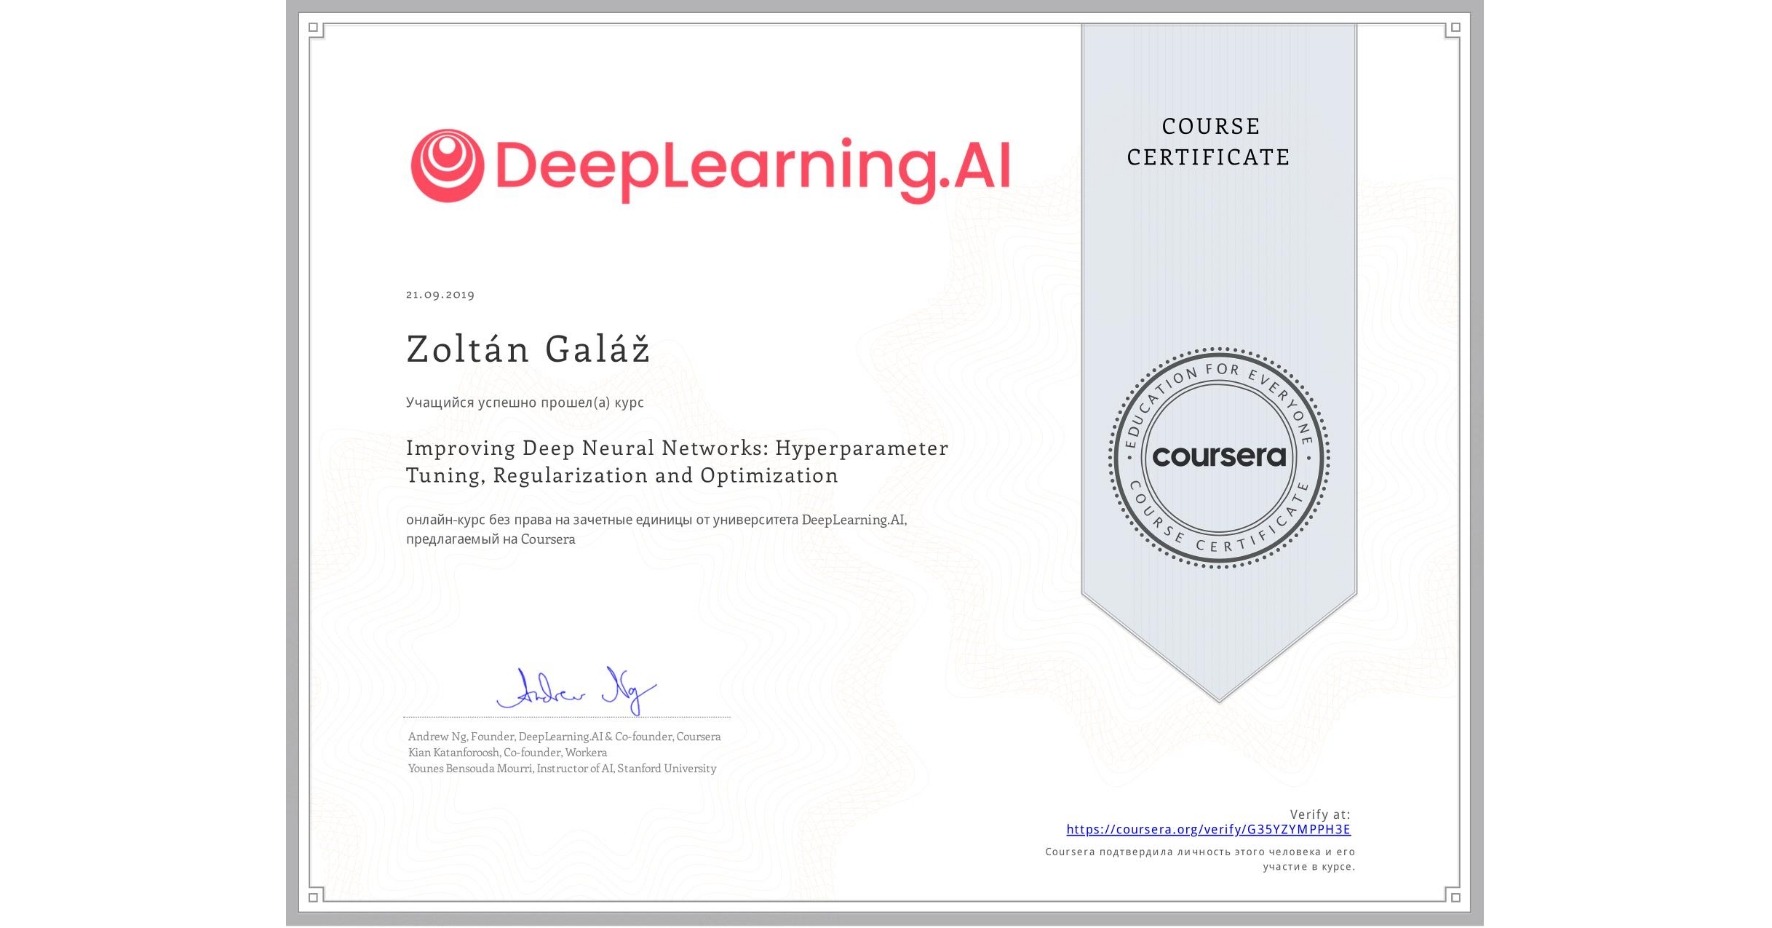 View certificate for Zoltán Galáž, Improving Deep Neural Networks: Hyperparameter Tuning, Regularization and Optimization, an online non-credit course authorized by DeepLearning.AI and offered through Coursera